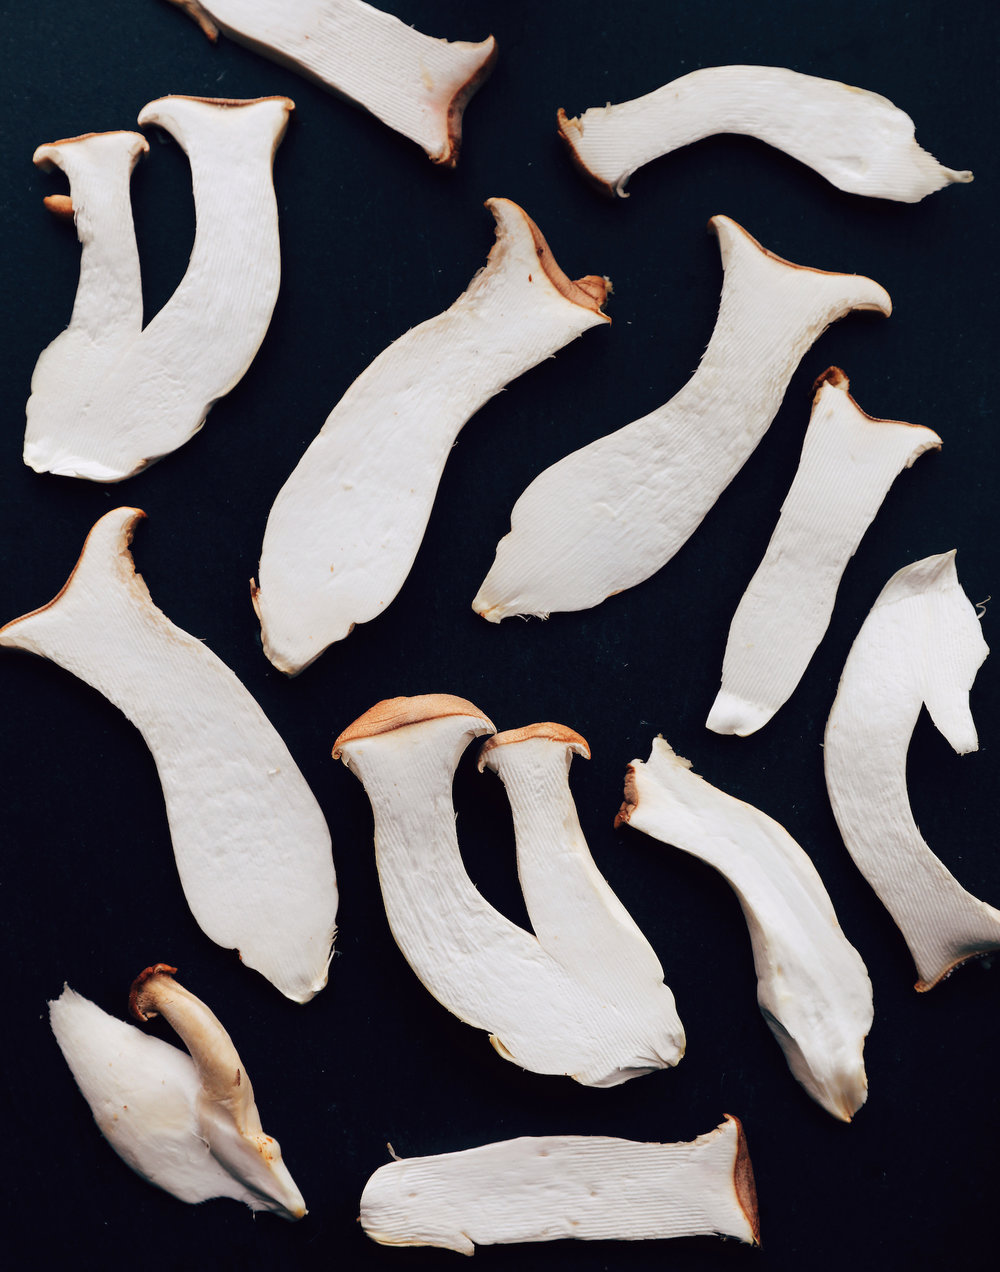 King Oyster mushrooms sliced on a serrated mandoline blade